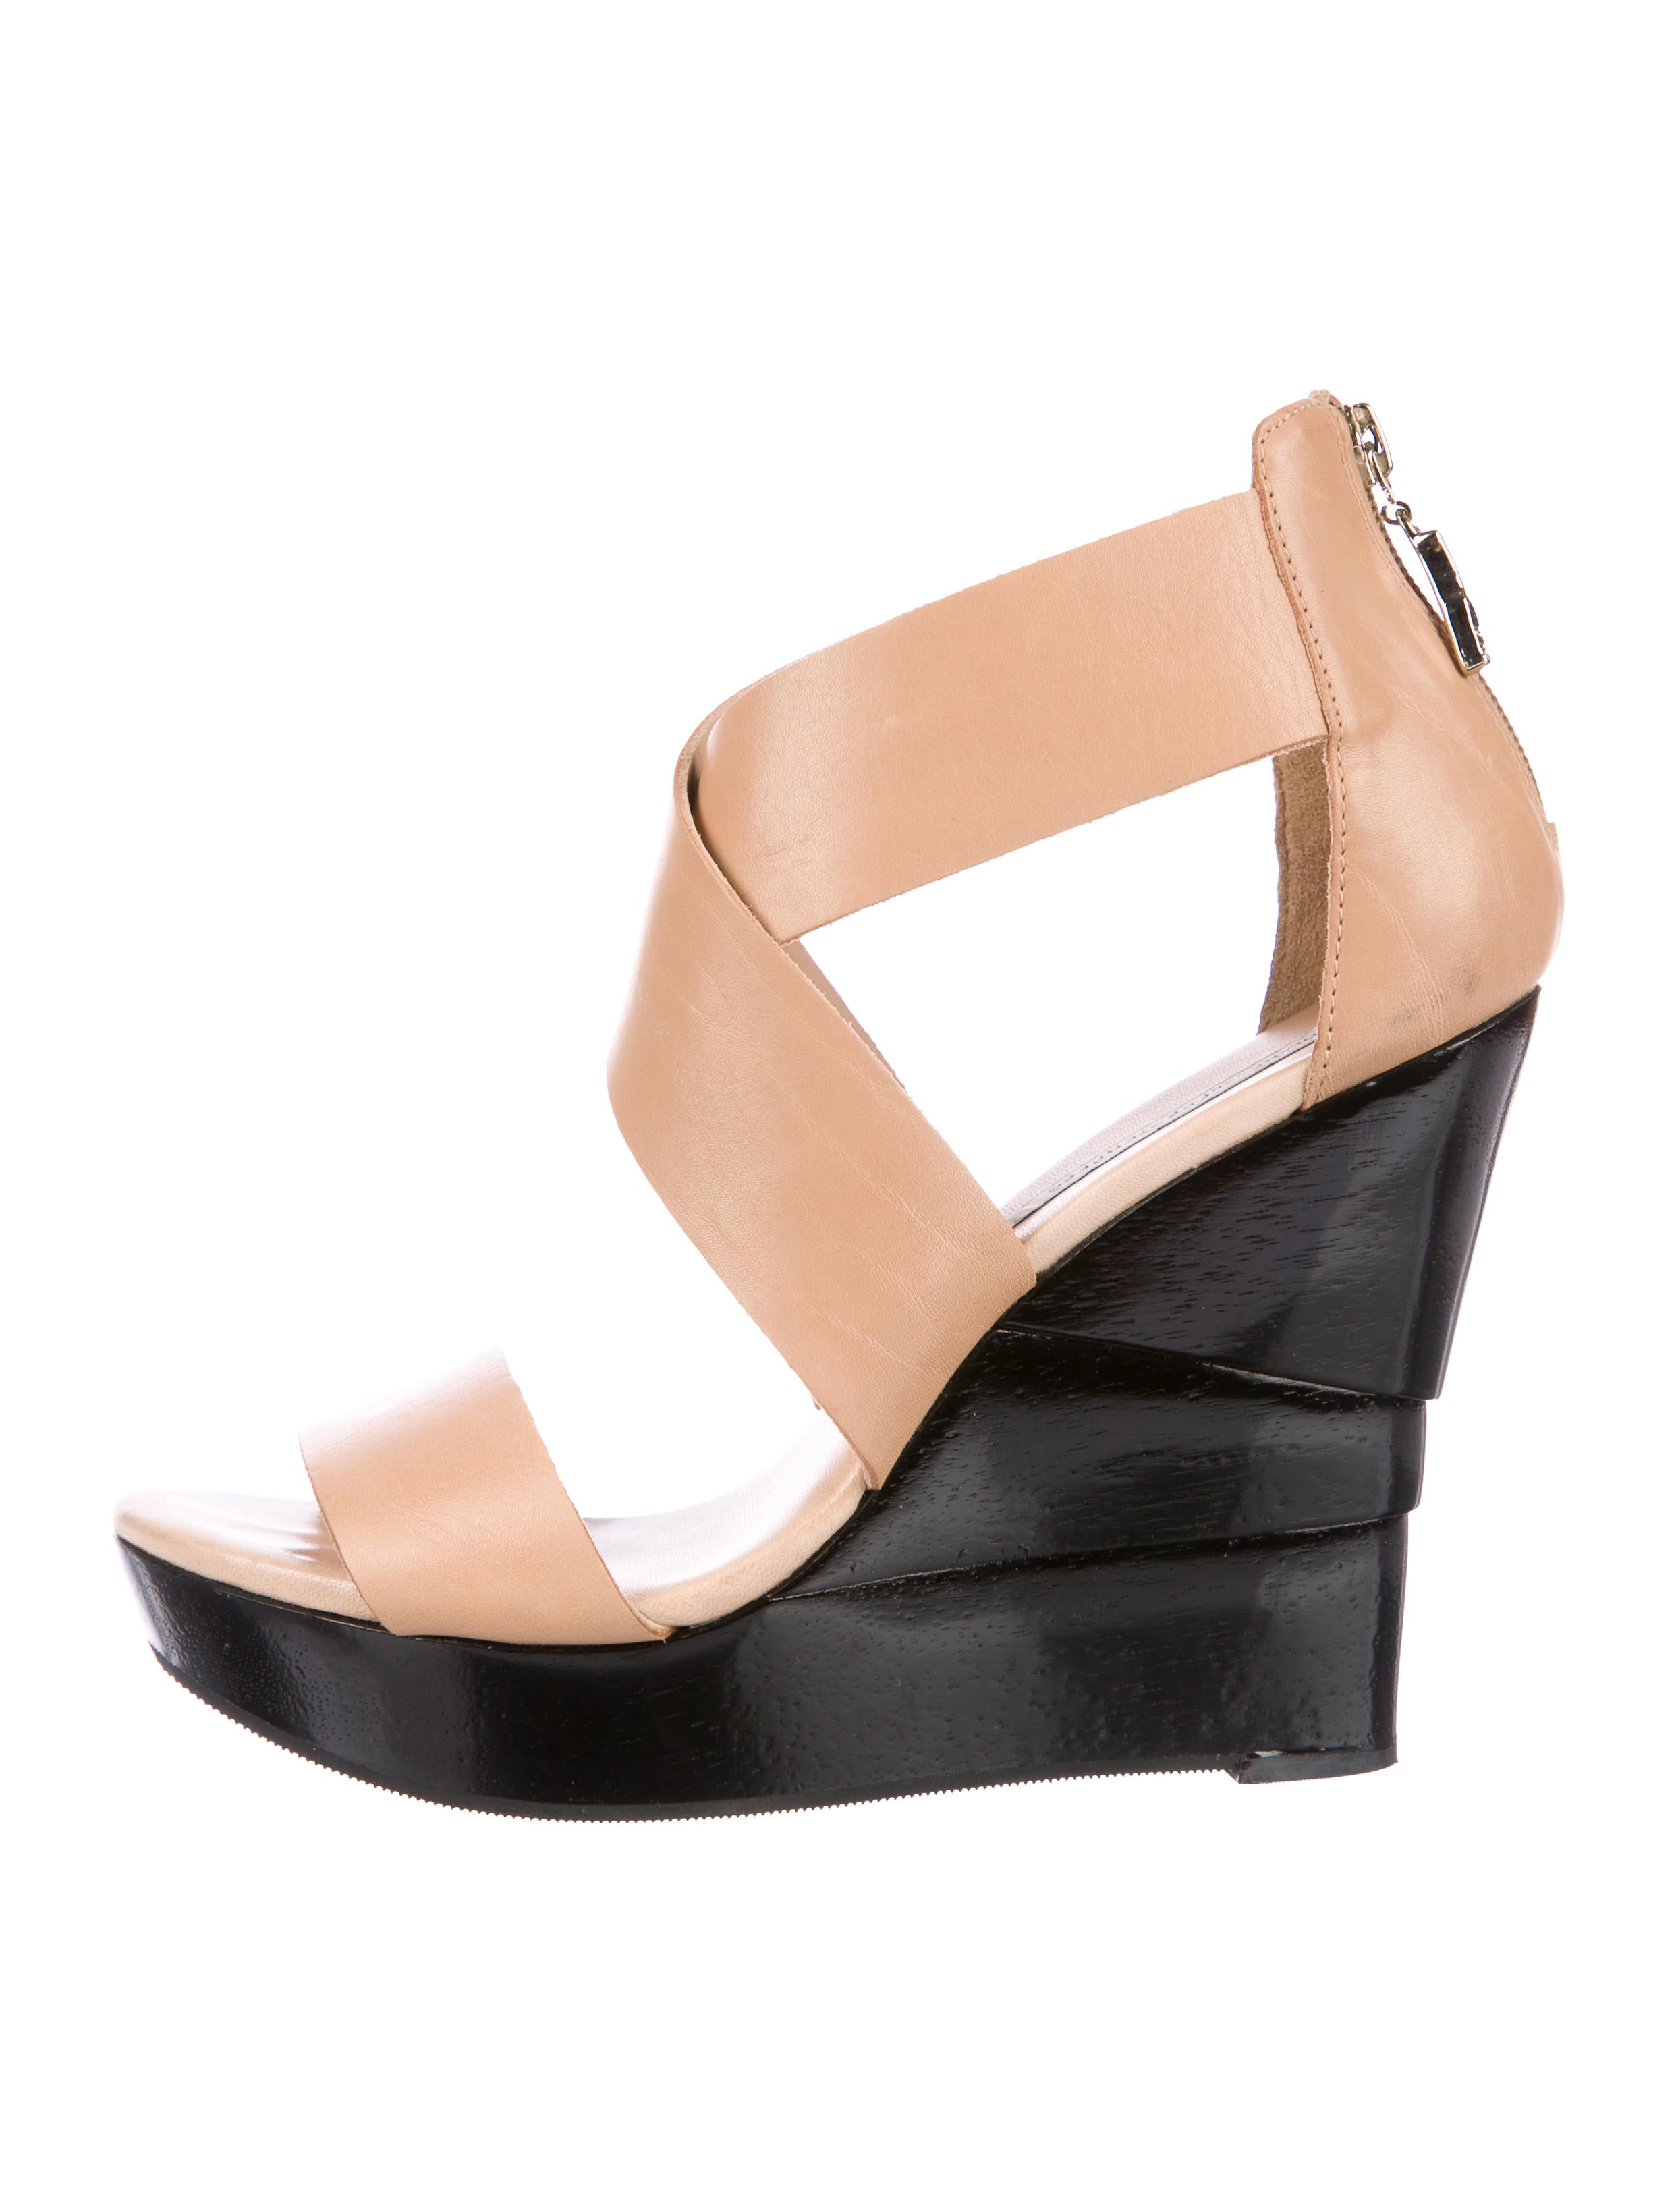 outlet get to buy clearance best Diane von Furstenberg Crossover Wedge Sandals low cost cheap price 5qrvHJkXNX